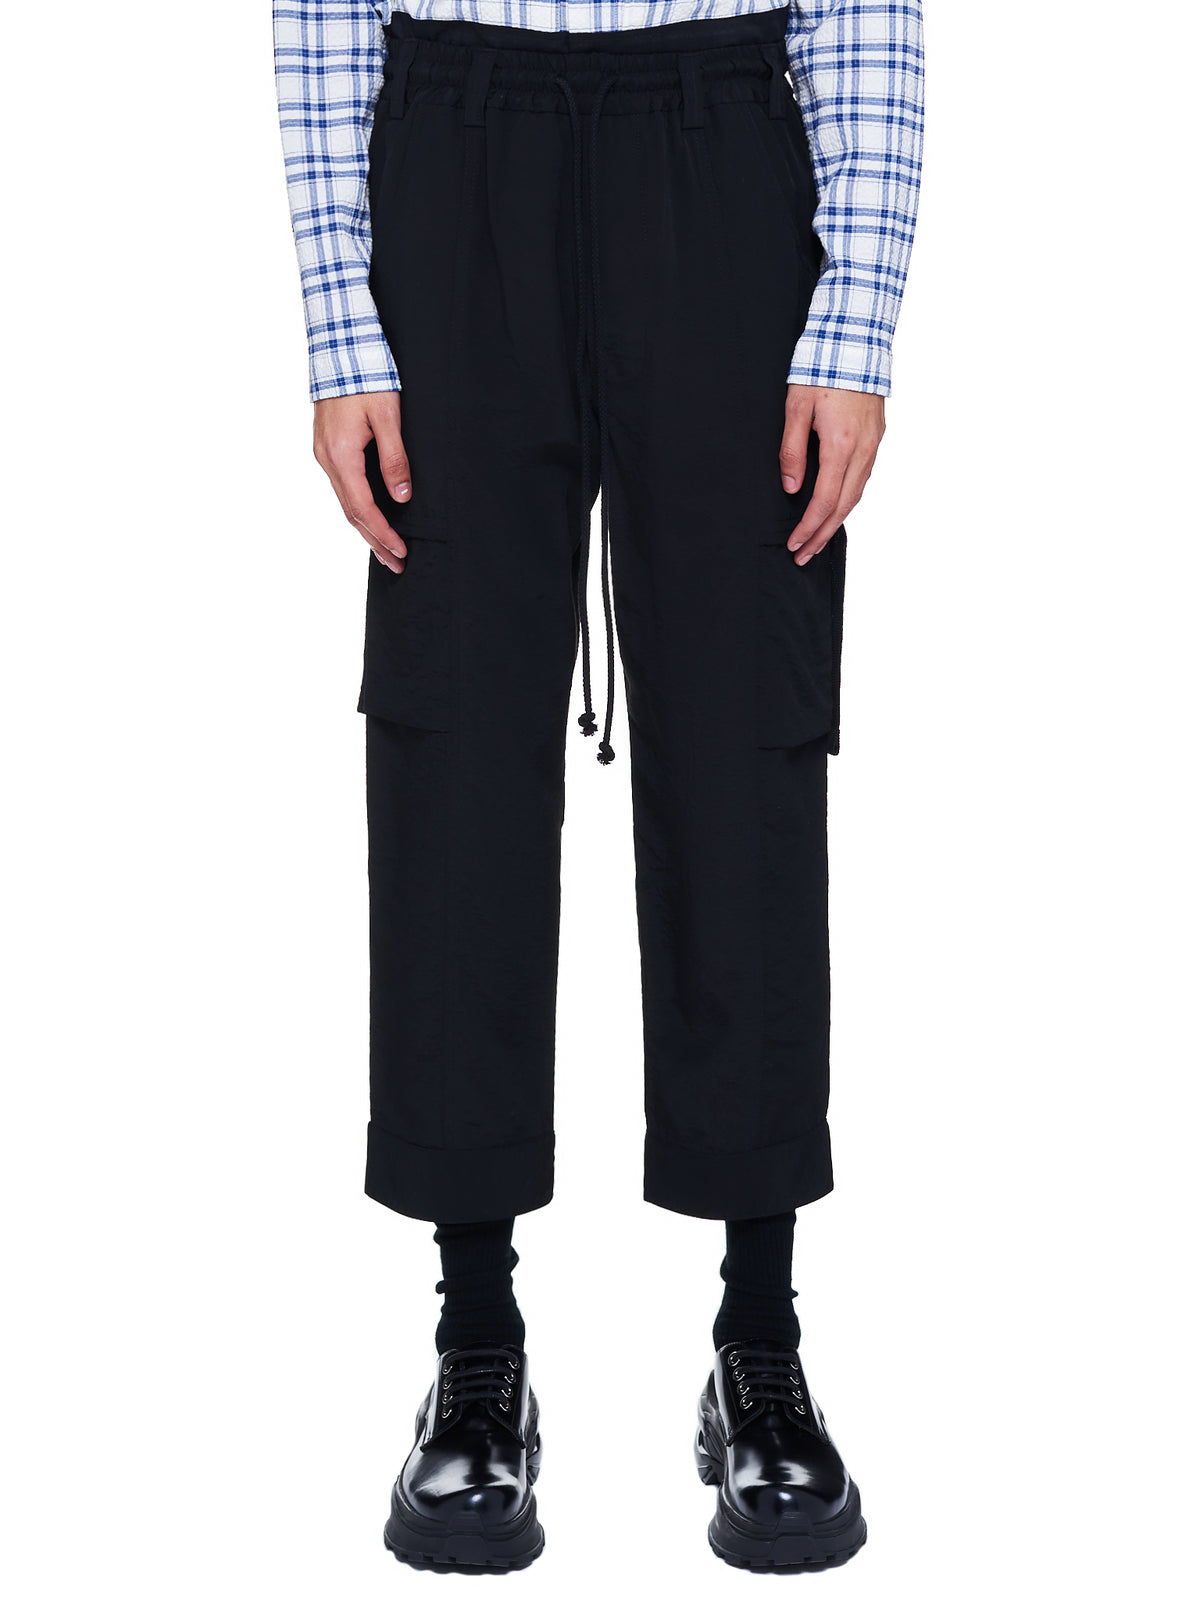 Tabbed Cargo Trousers (211-MPT070-BLACK)